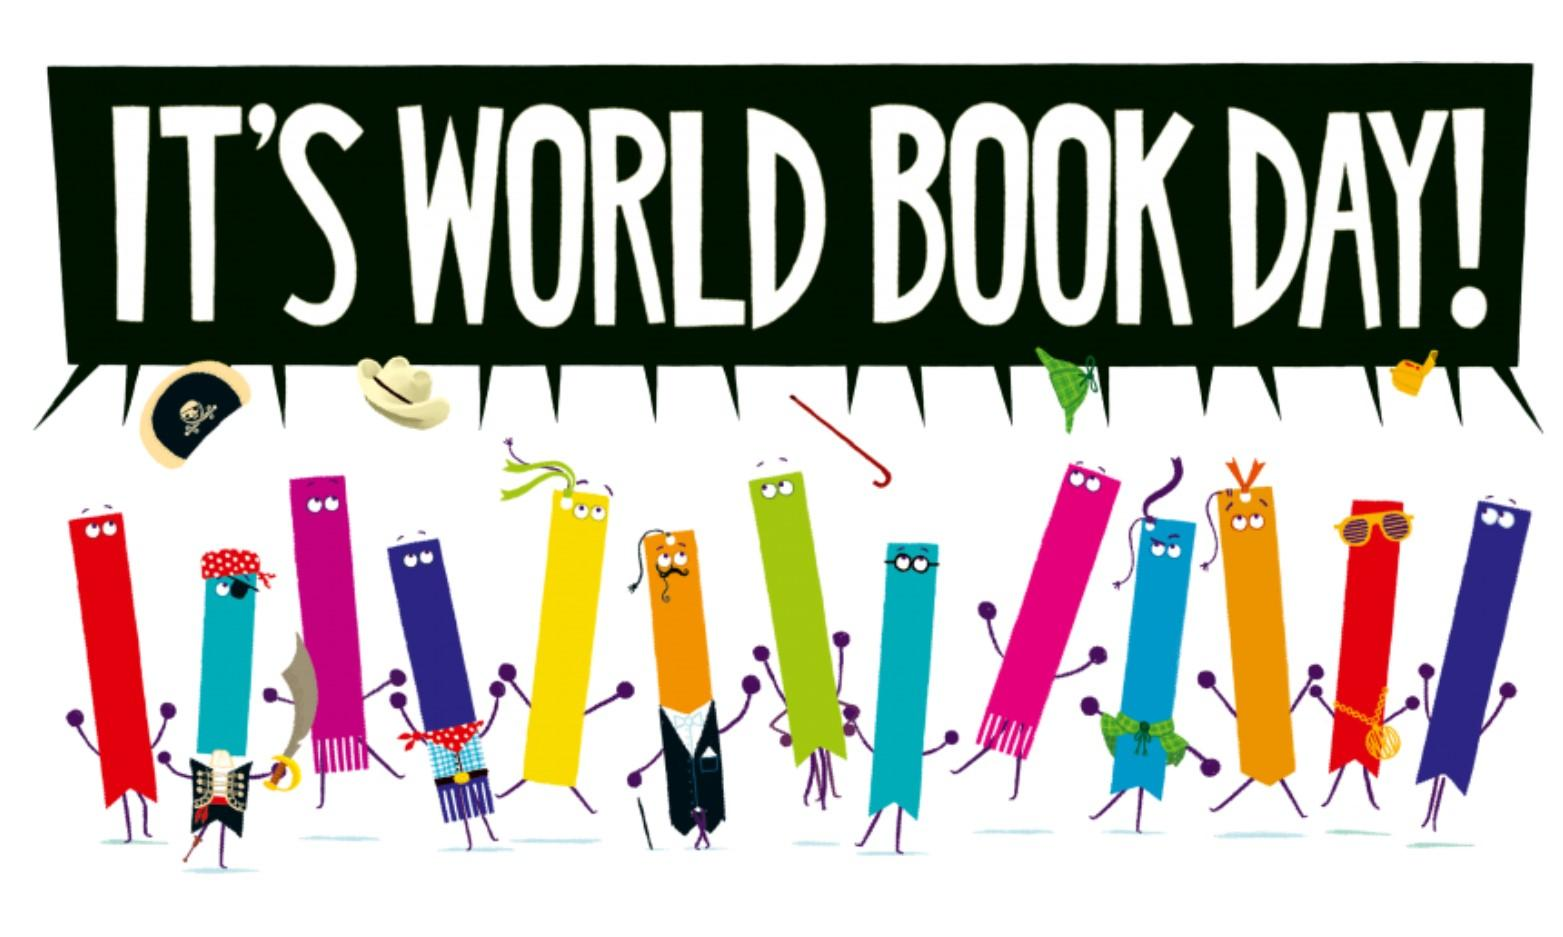 World Book Day at Pembroke Dock Library